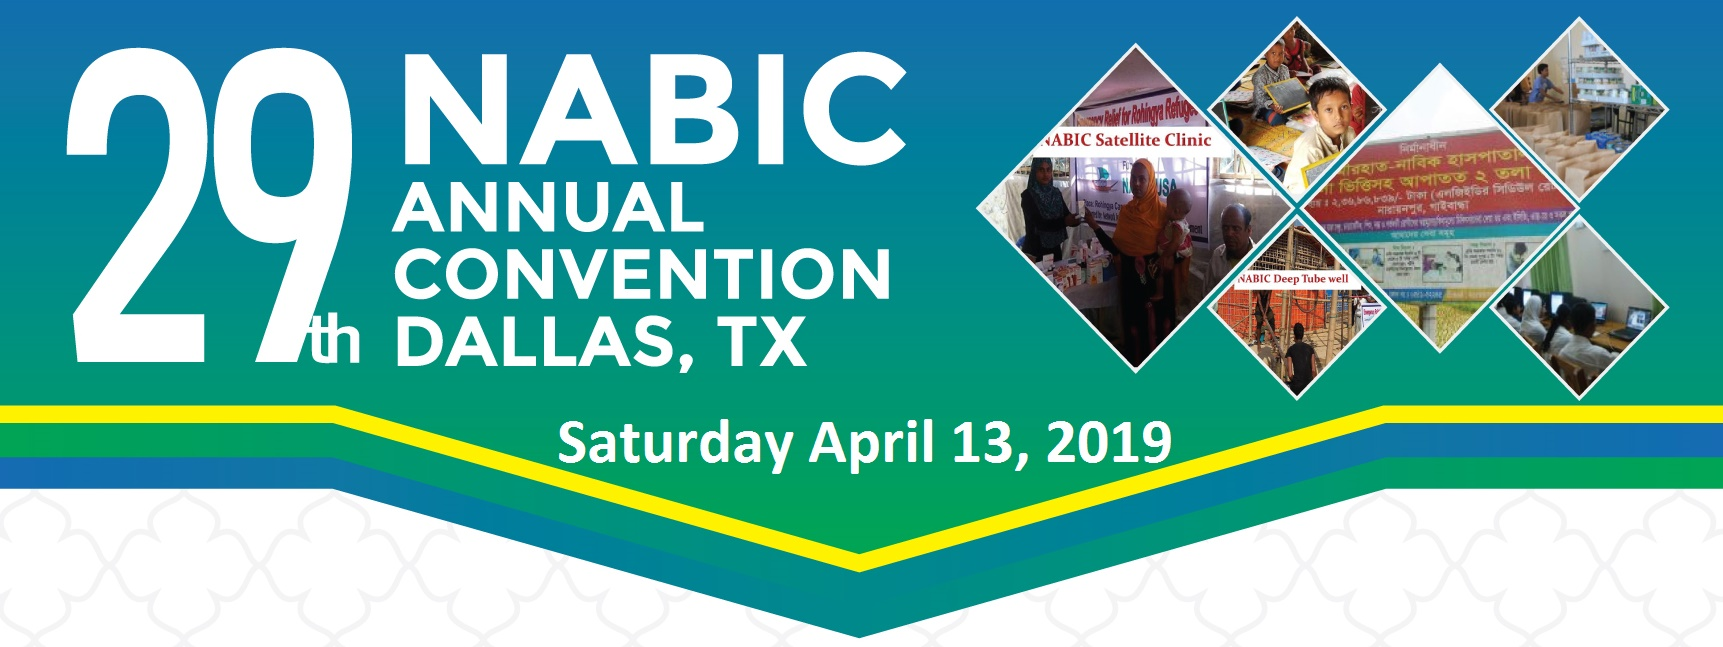 NABIC 29th Annual Convention – Saturday, April 13, 2019